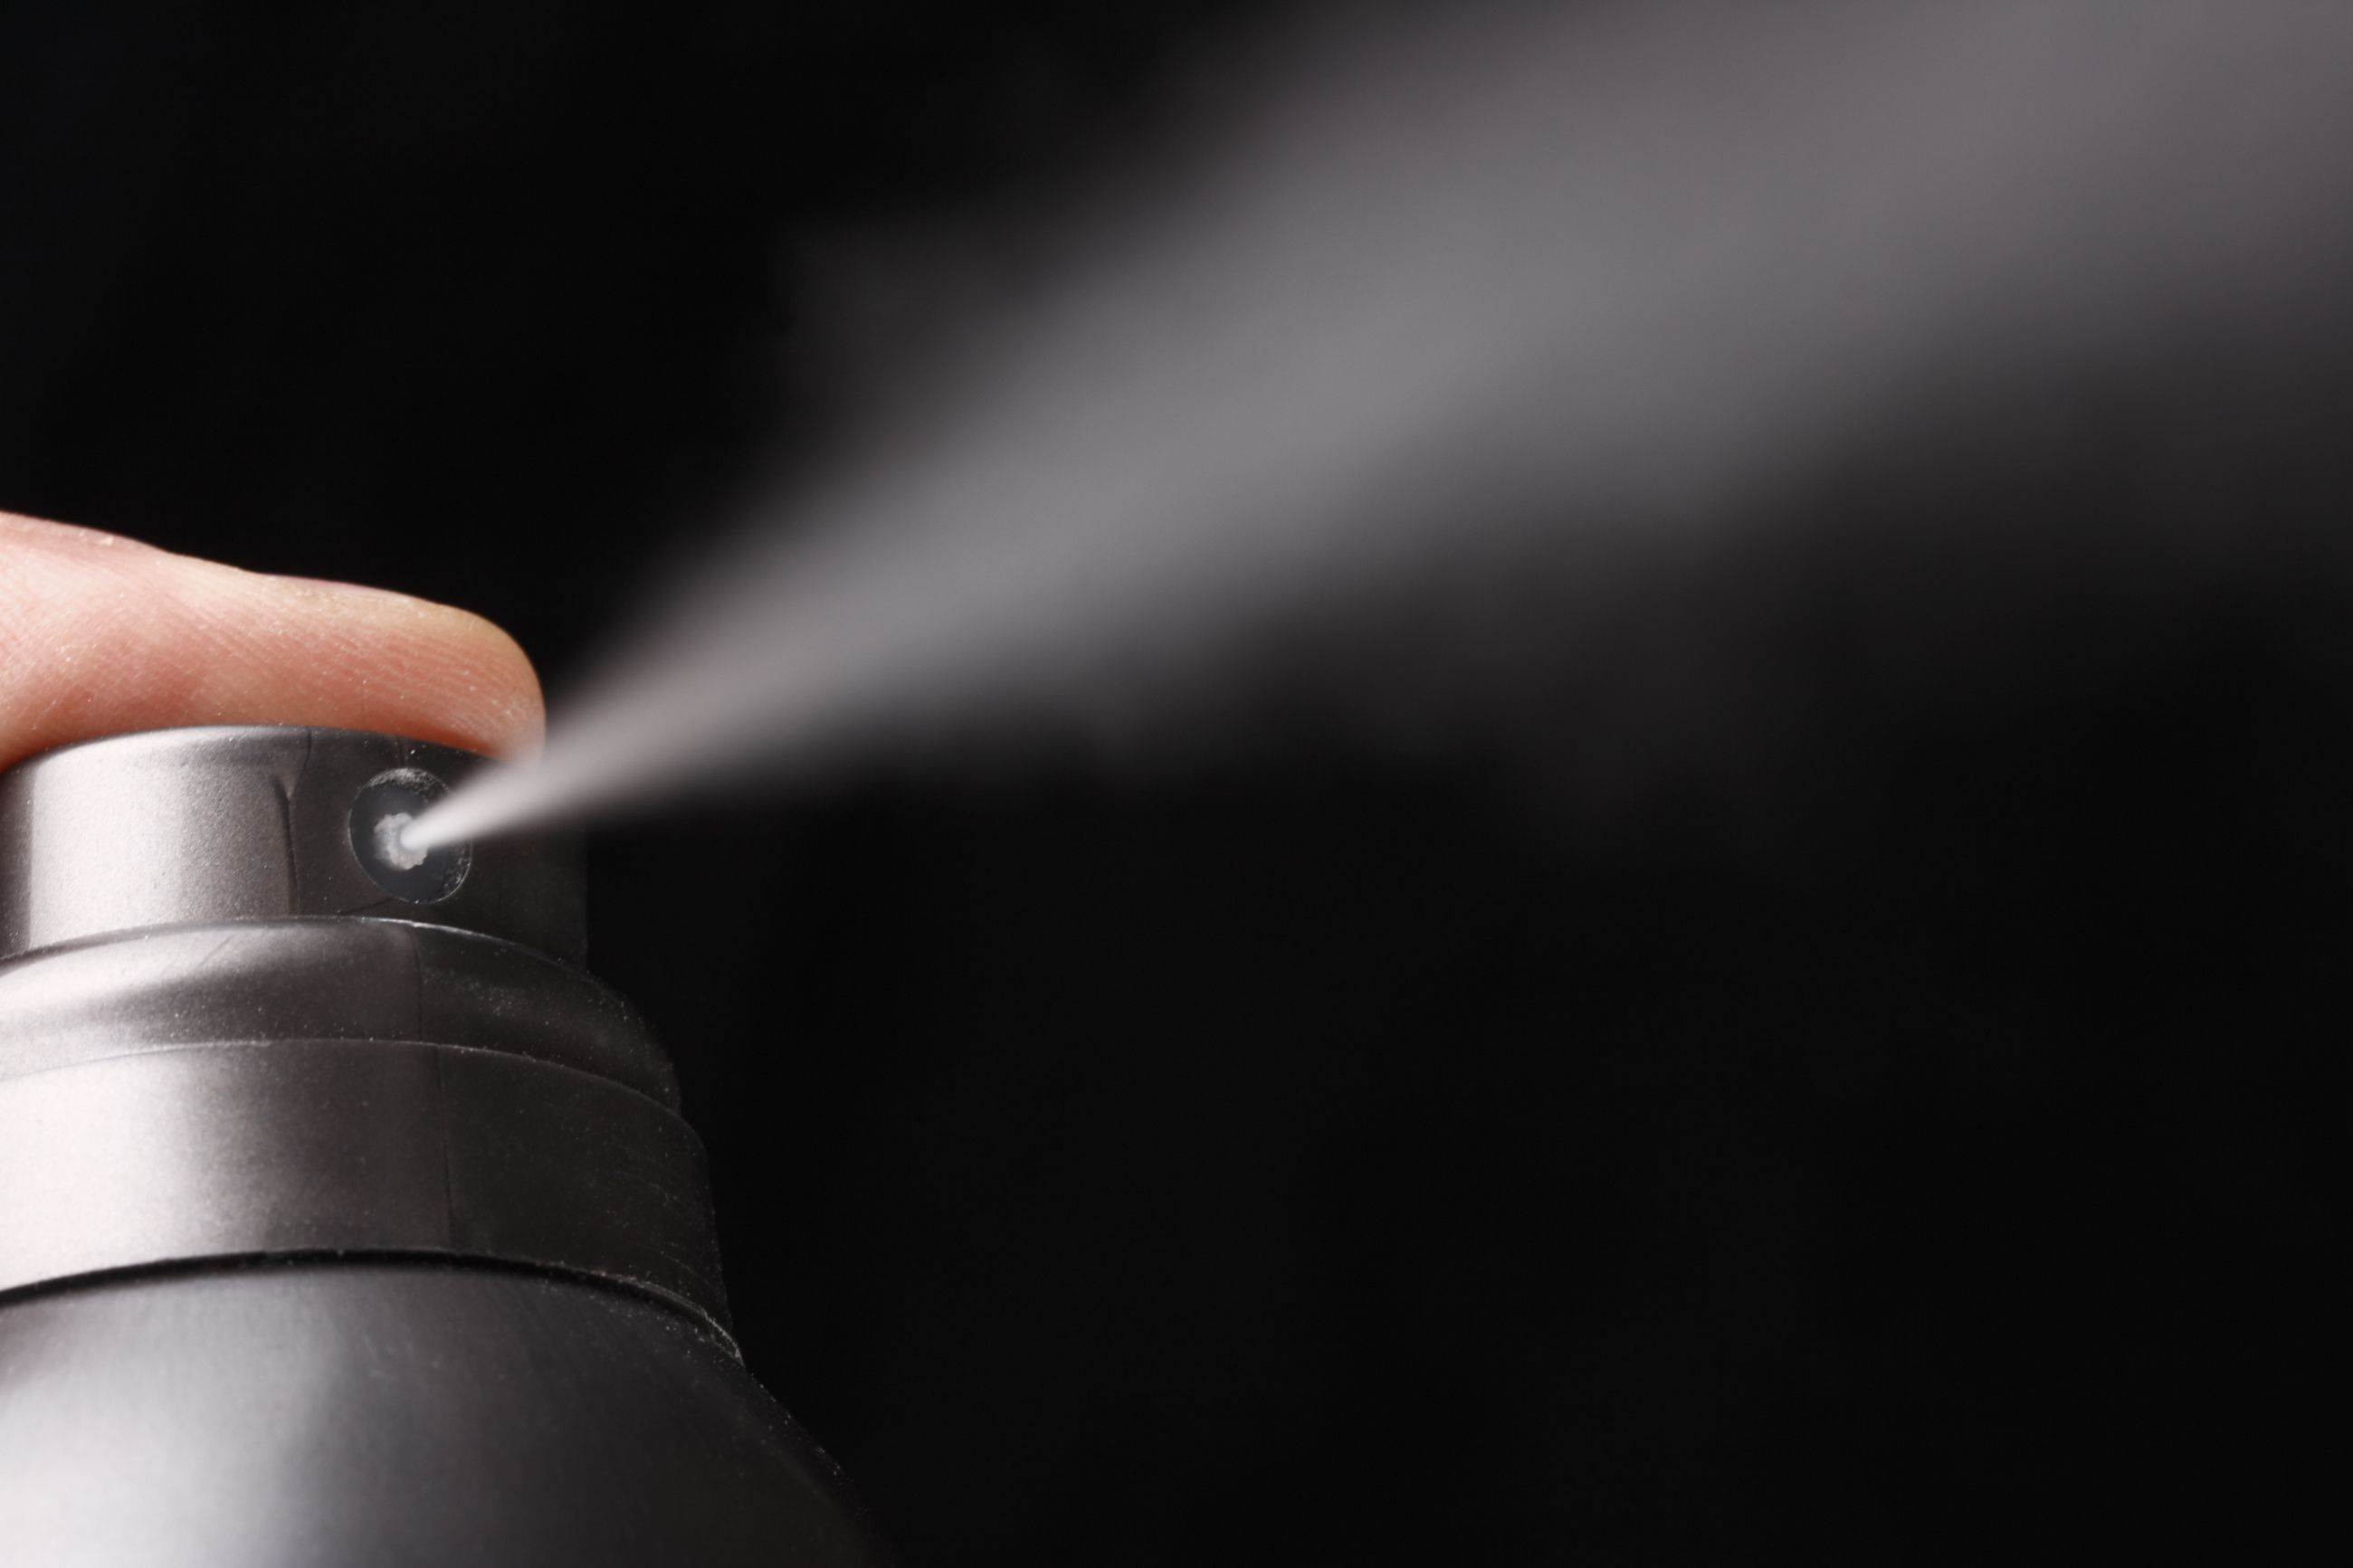 How to Remove Hair Spray Stains from Clothes and Carpet